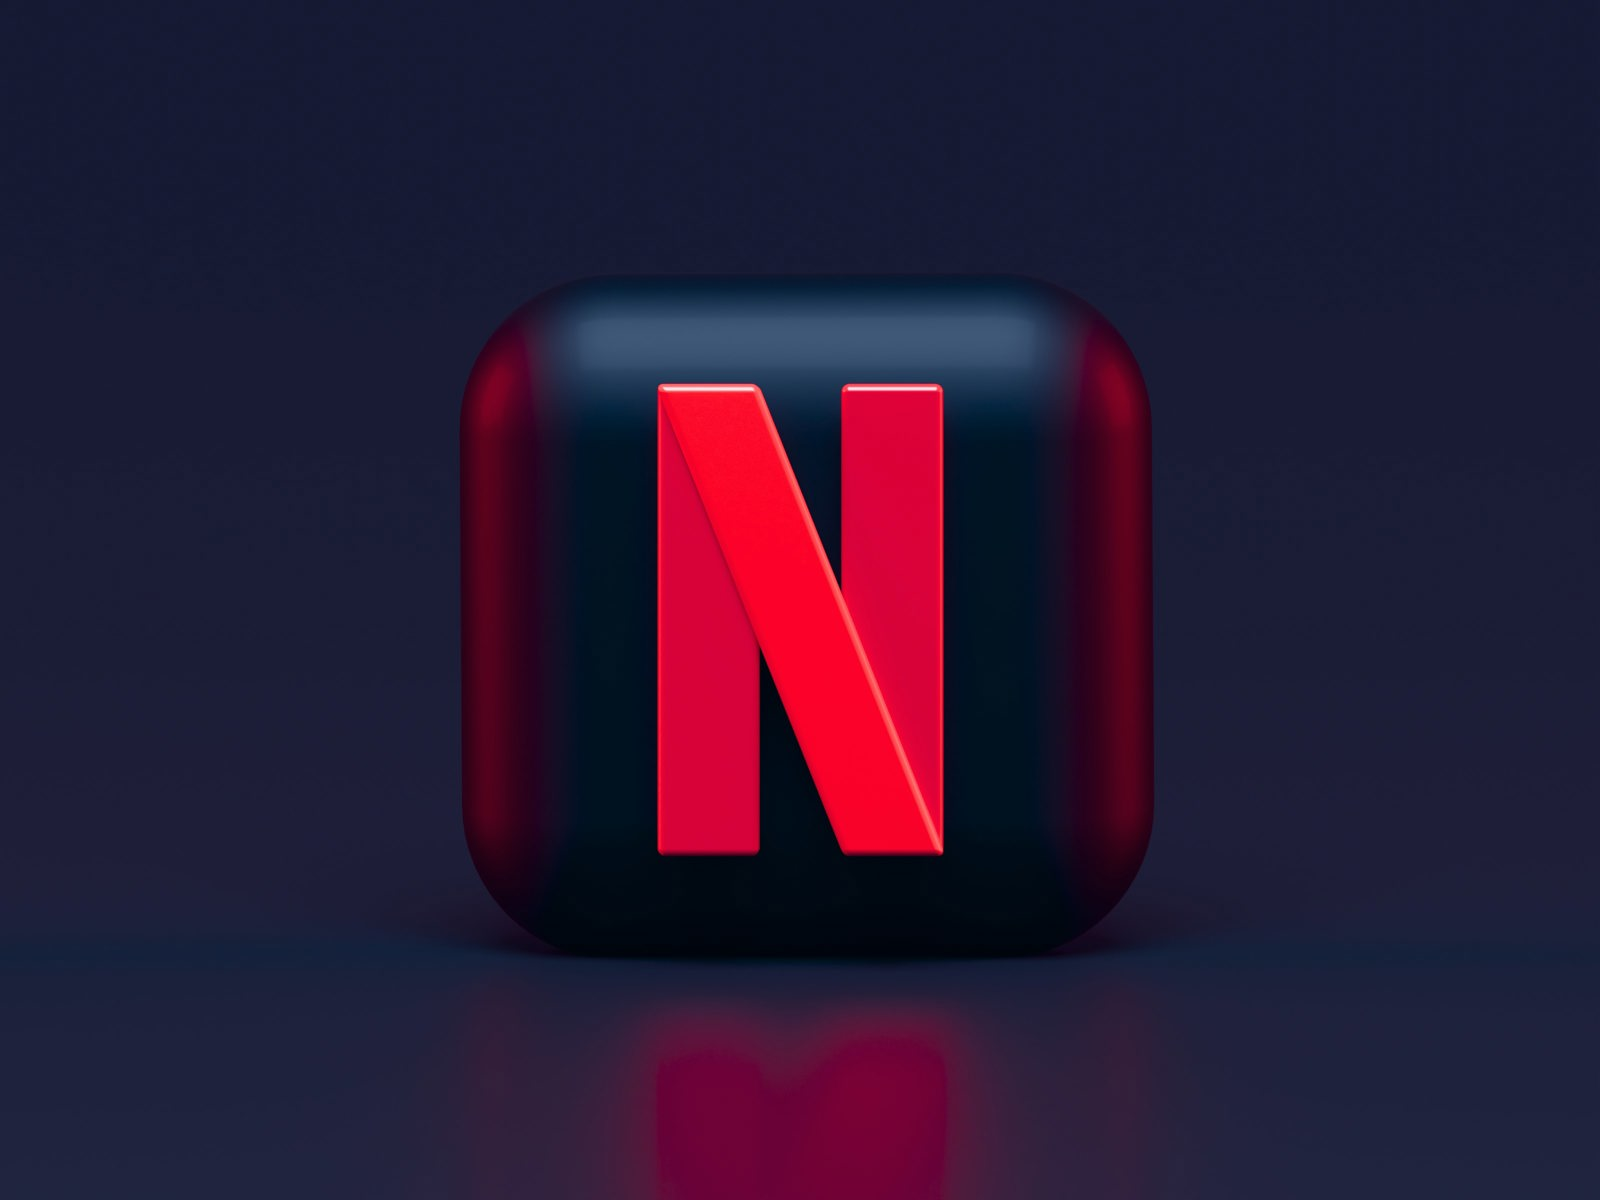 Netflix stock, nflx stock news and analysis